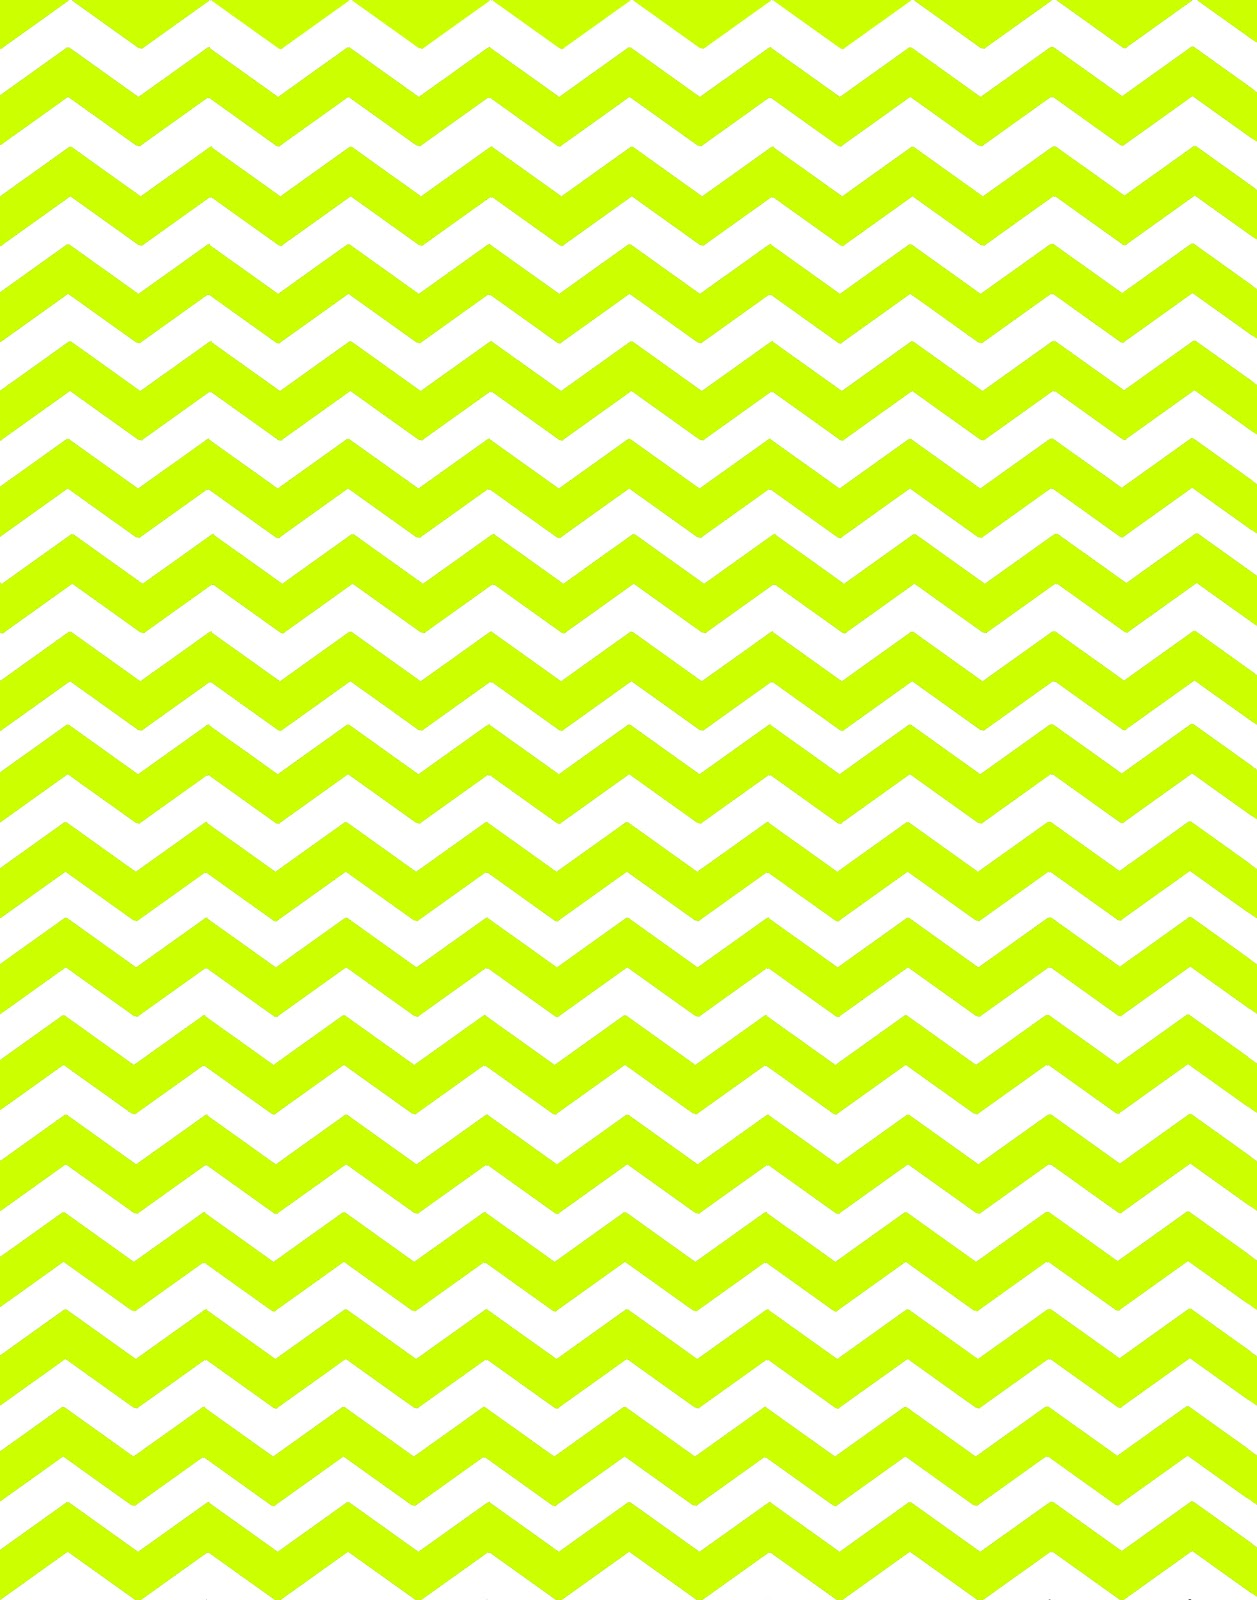 16 New Colors Chevron background patterns!